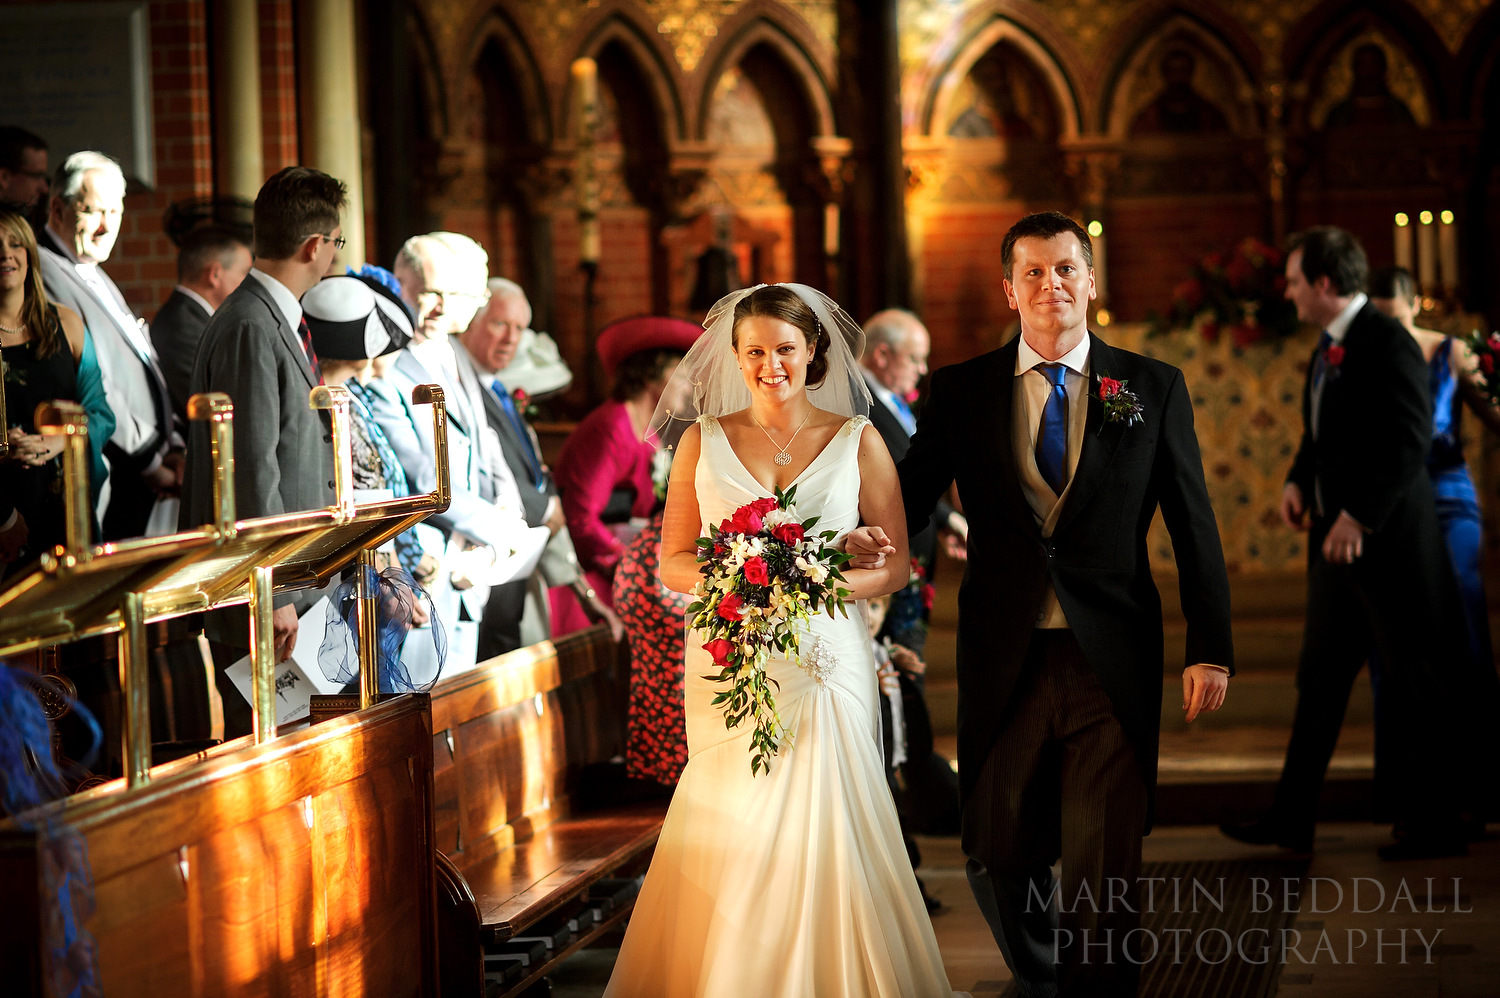 Married at Wellington College wedding